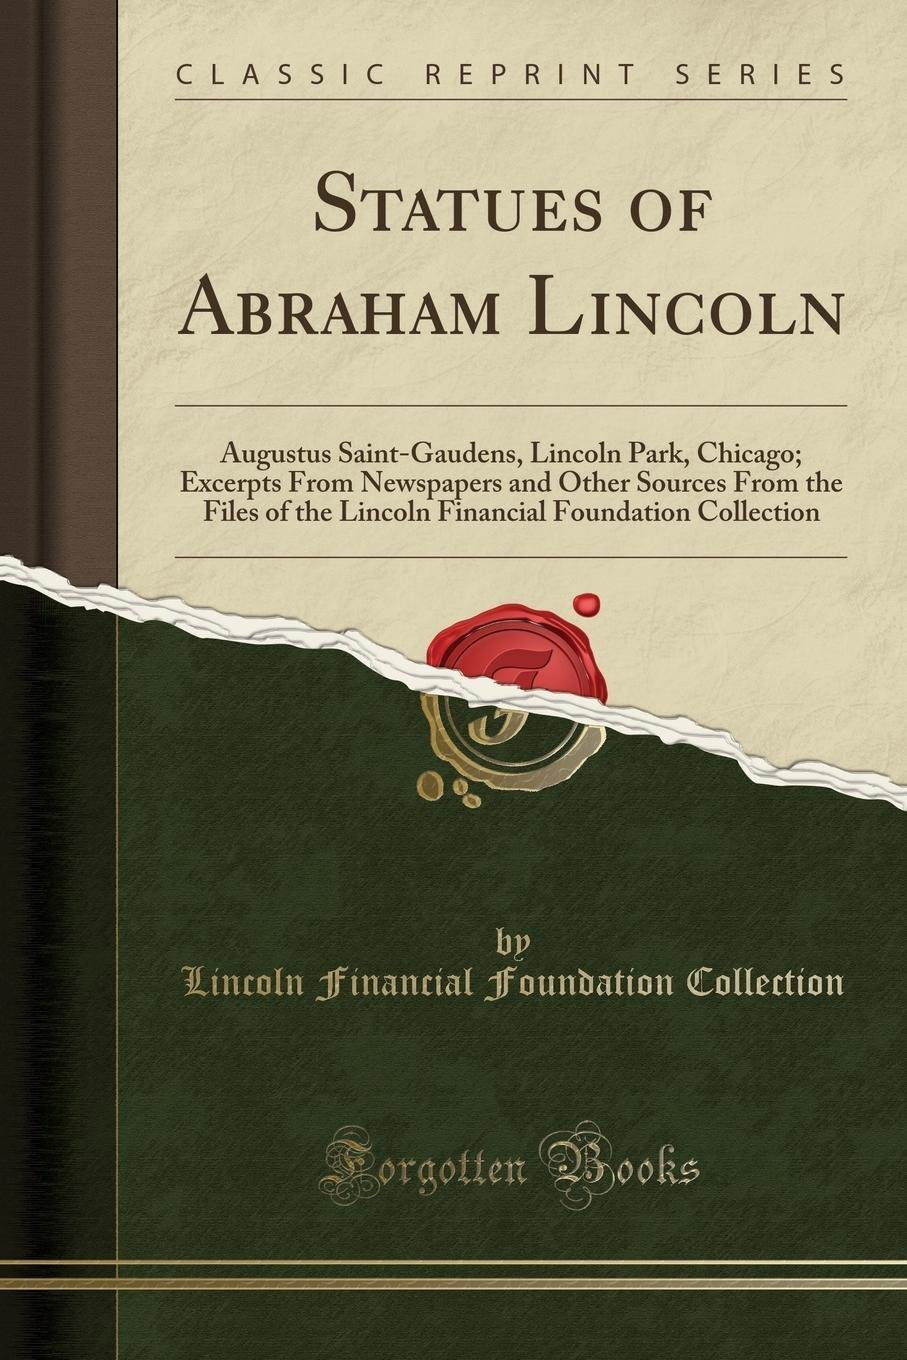 Statues of Abraham Lincoln: Augustus Saint-Gaudens, Lincoln Park, Chicago; Excerpts From Newspapers and Other Sources From the Files of the Lincoln Financial Foundation Collection (Classic Reprint) ebook